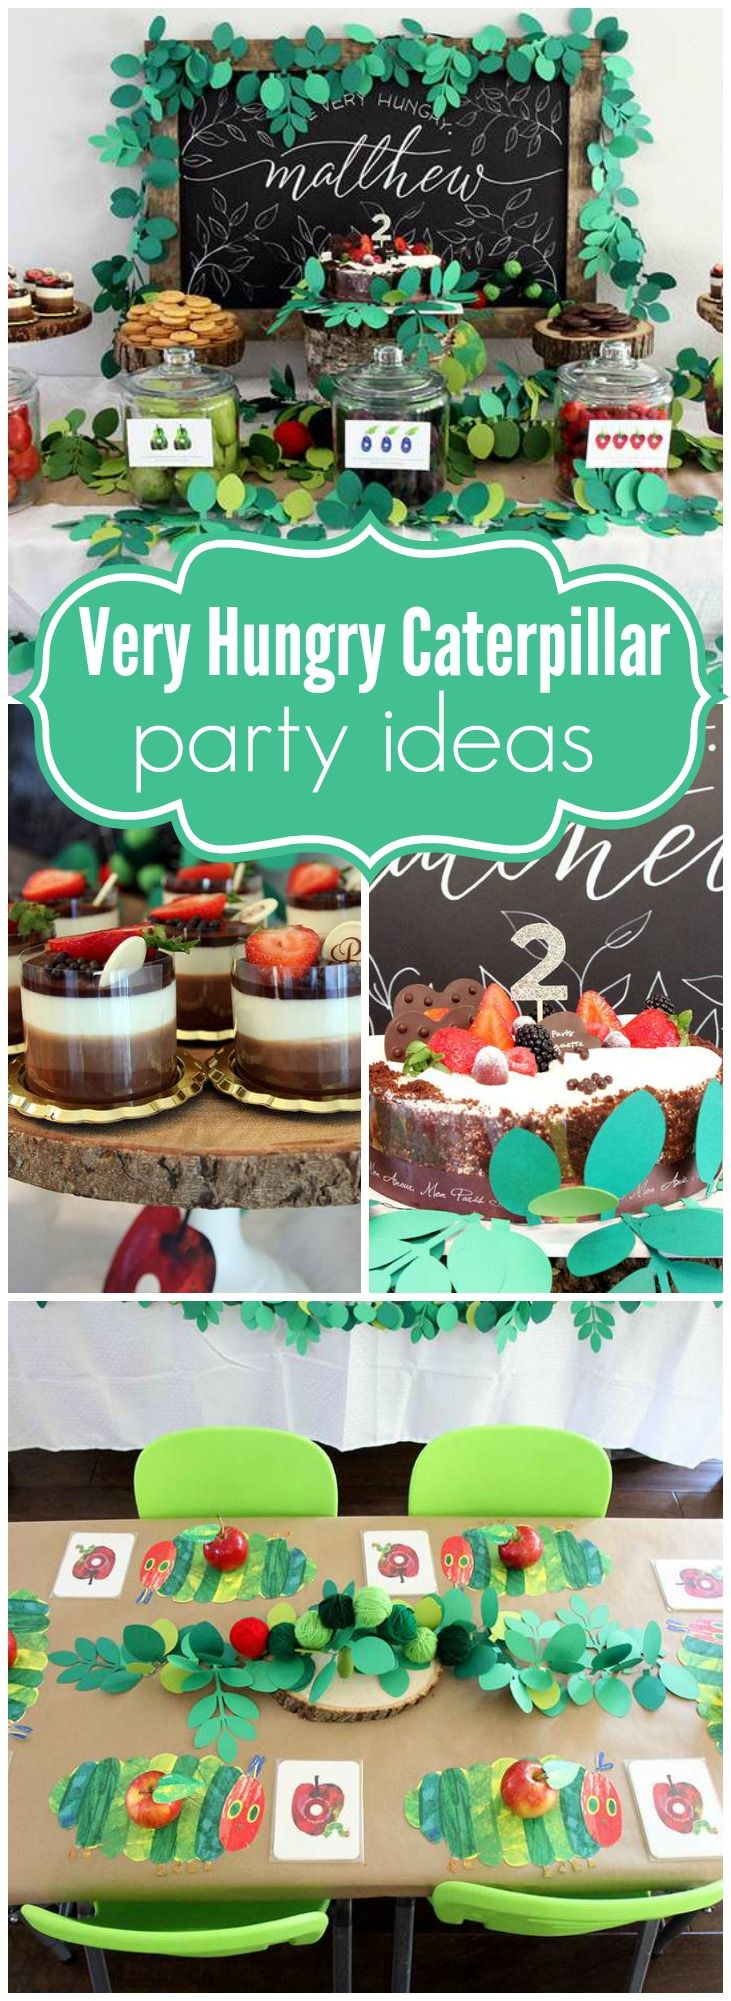 Check out this Very Hungry Caterpillar party with a rustic twist! See more party ideas at CatchMyParty.com!